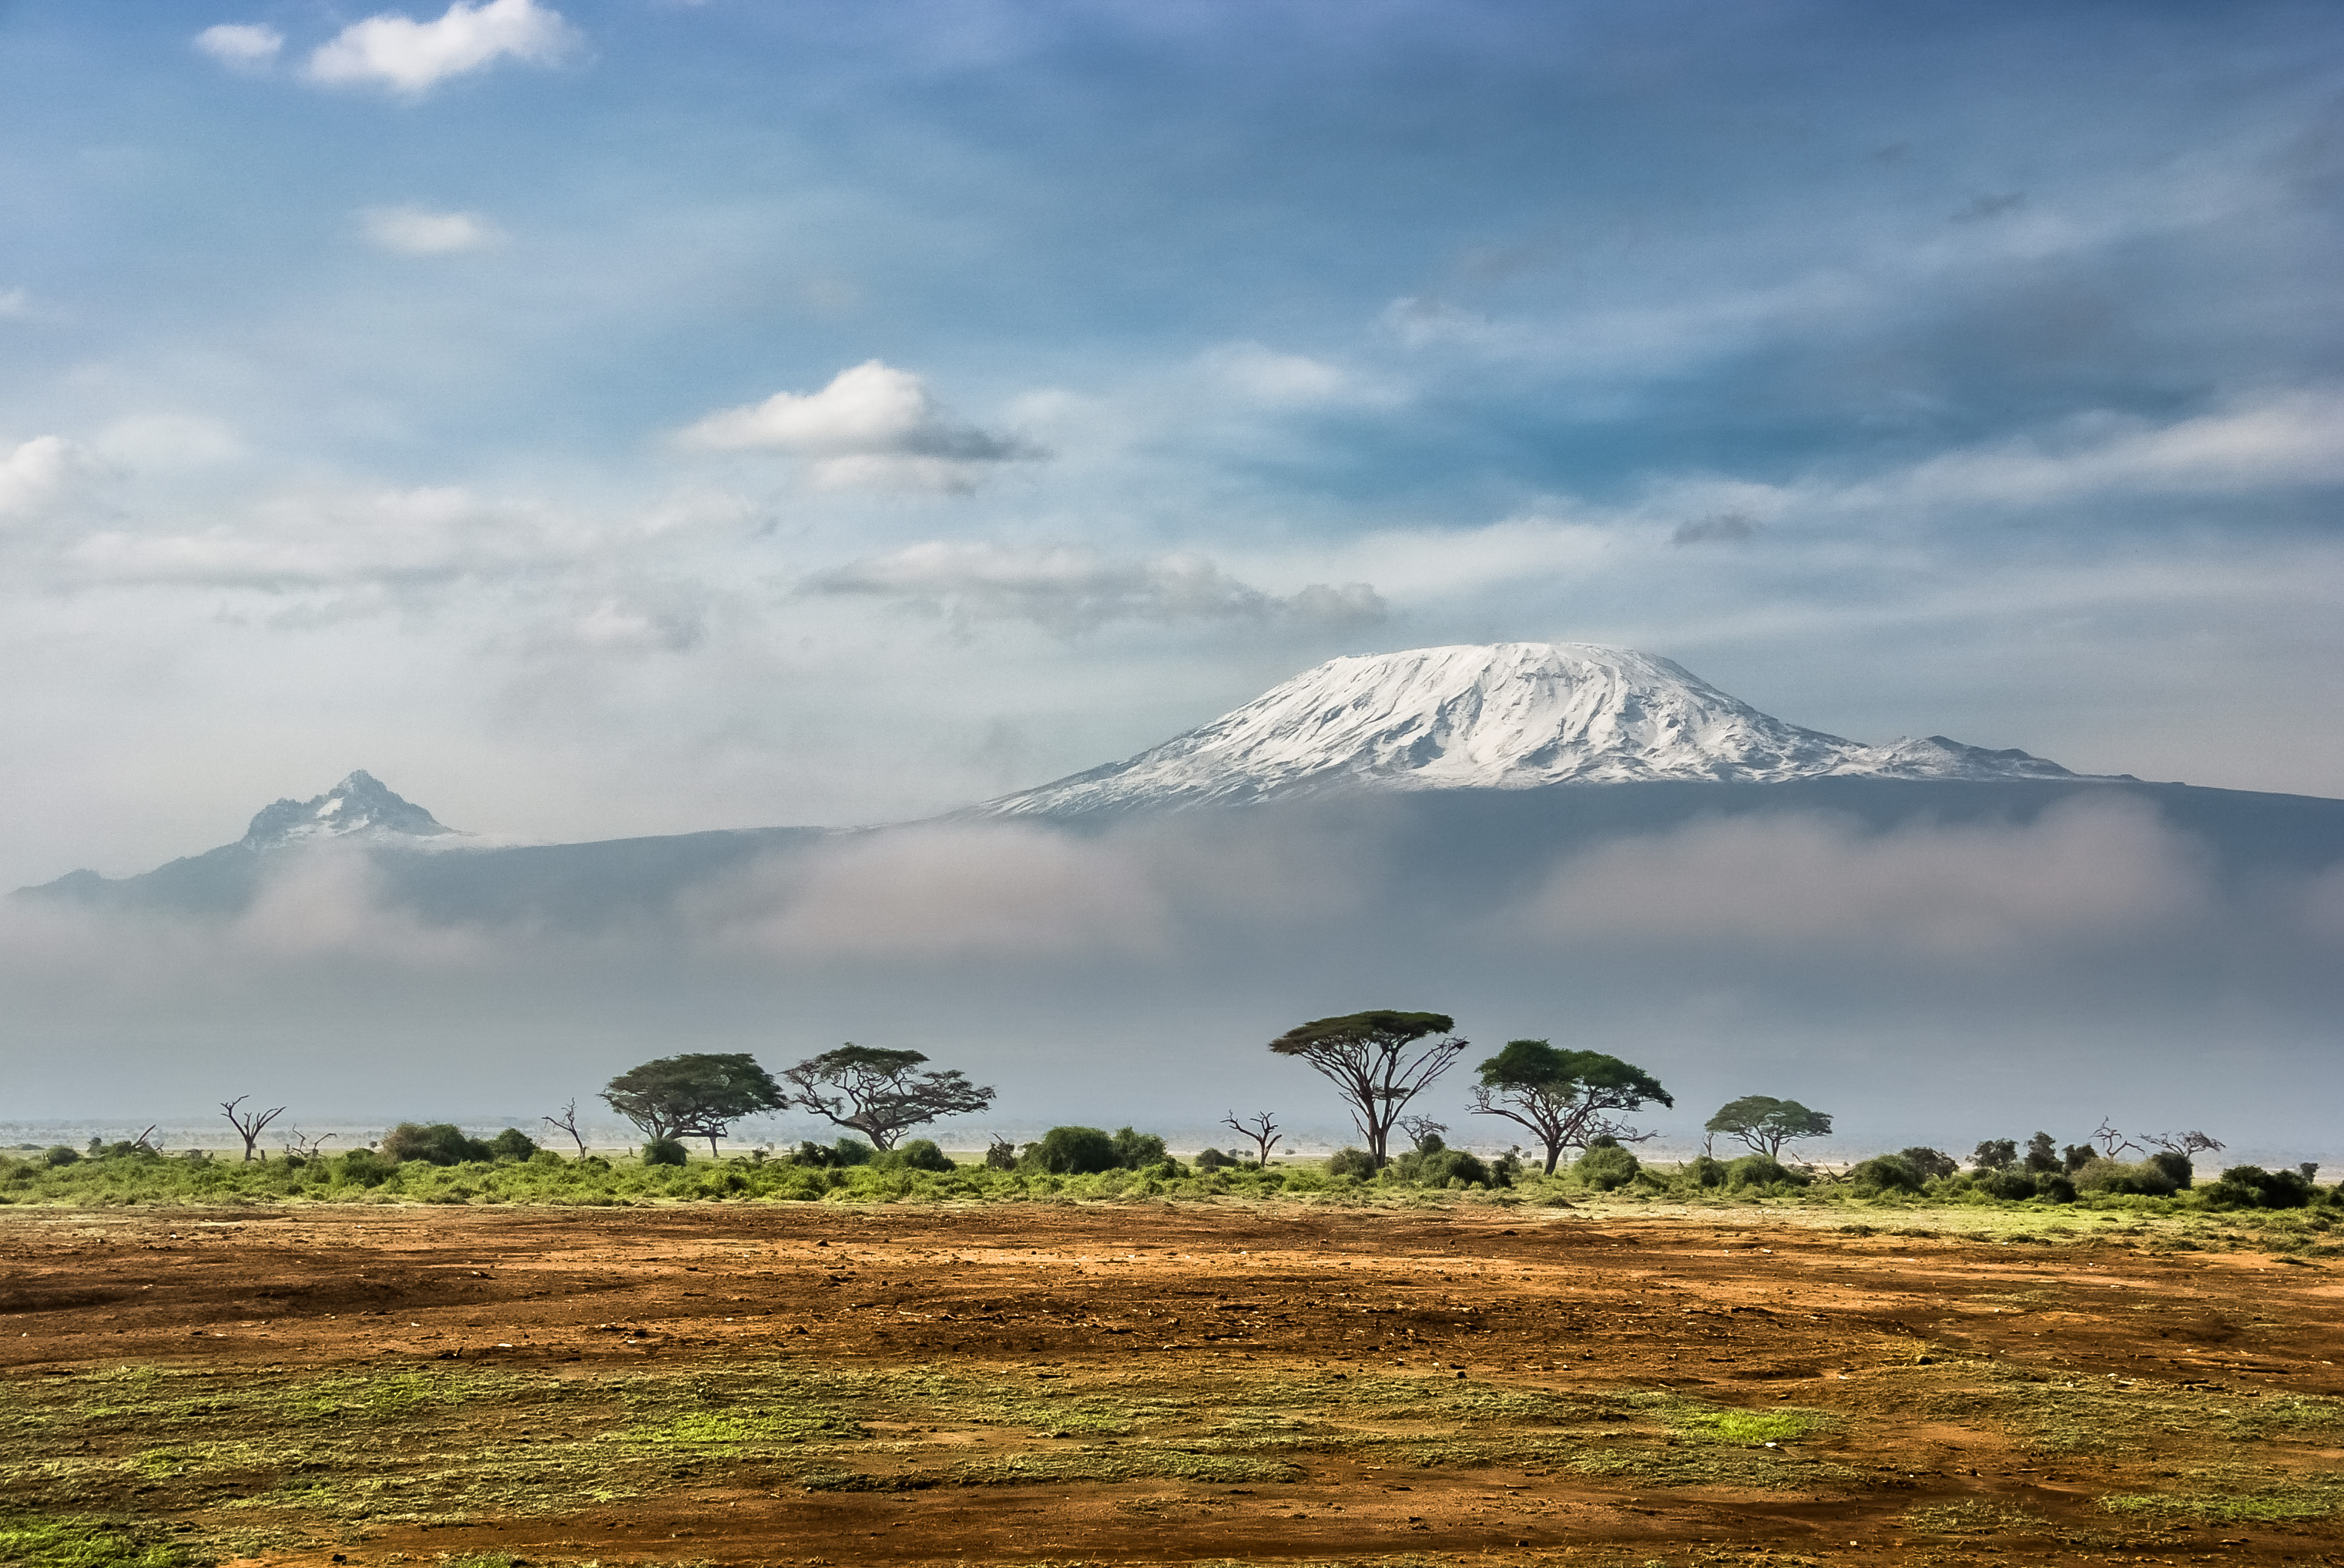 A Comprehensive Guide to Climbing Kilimanjaro